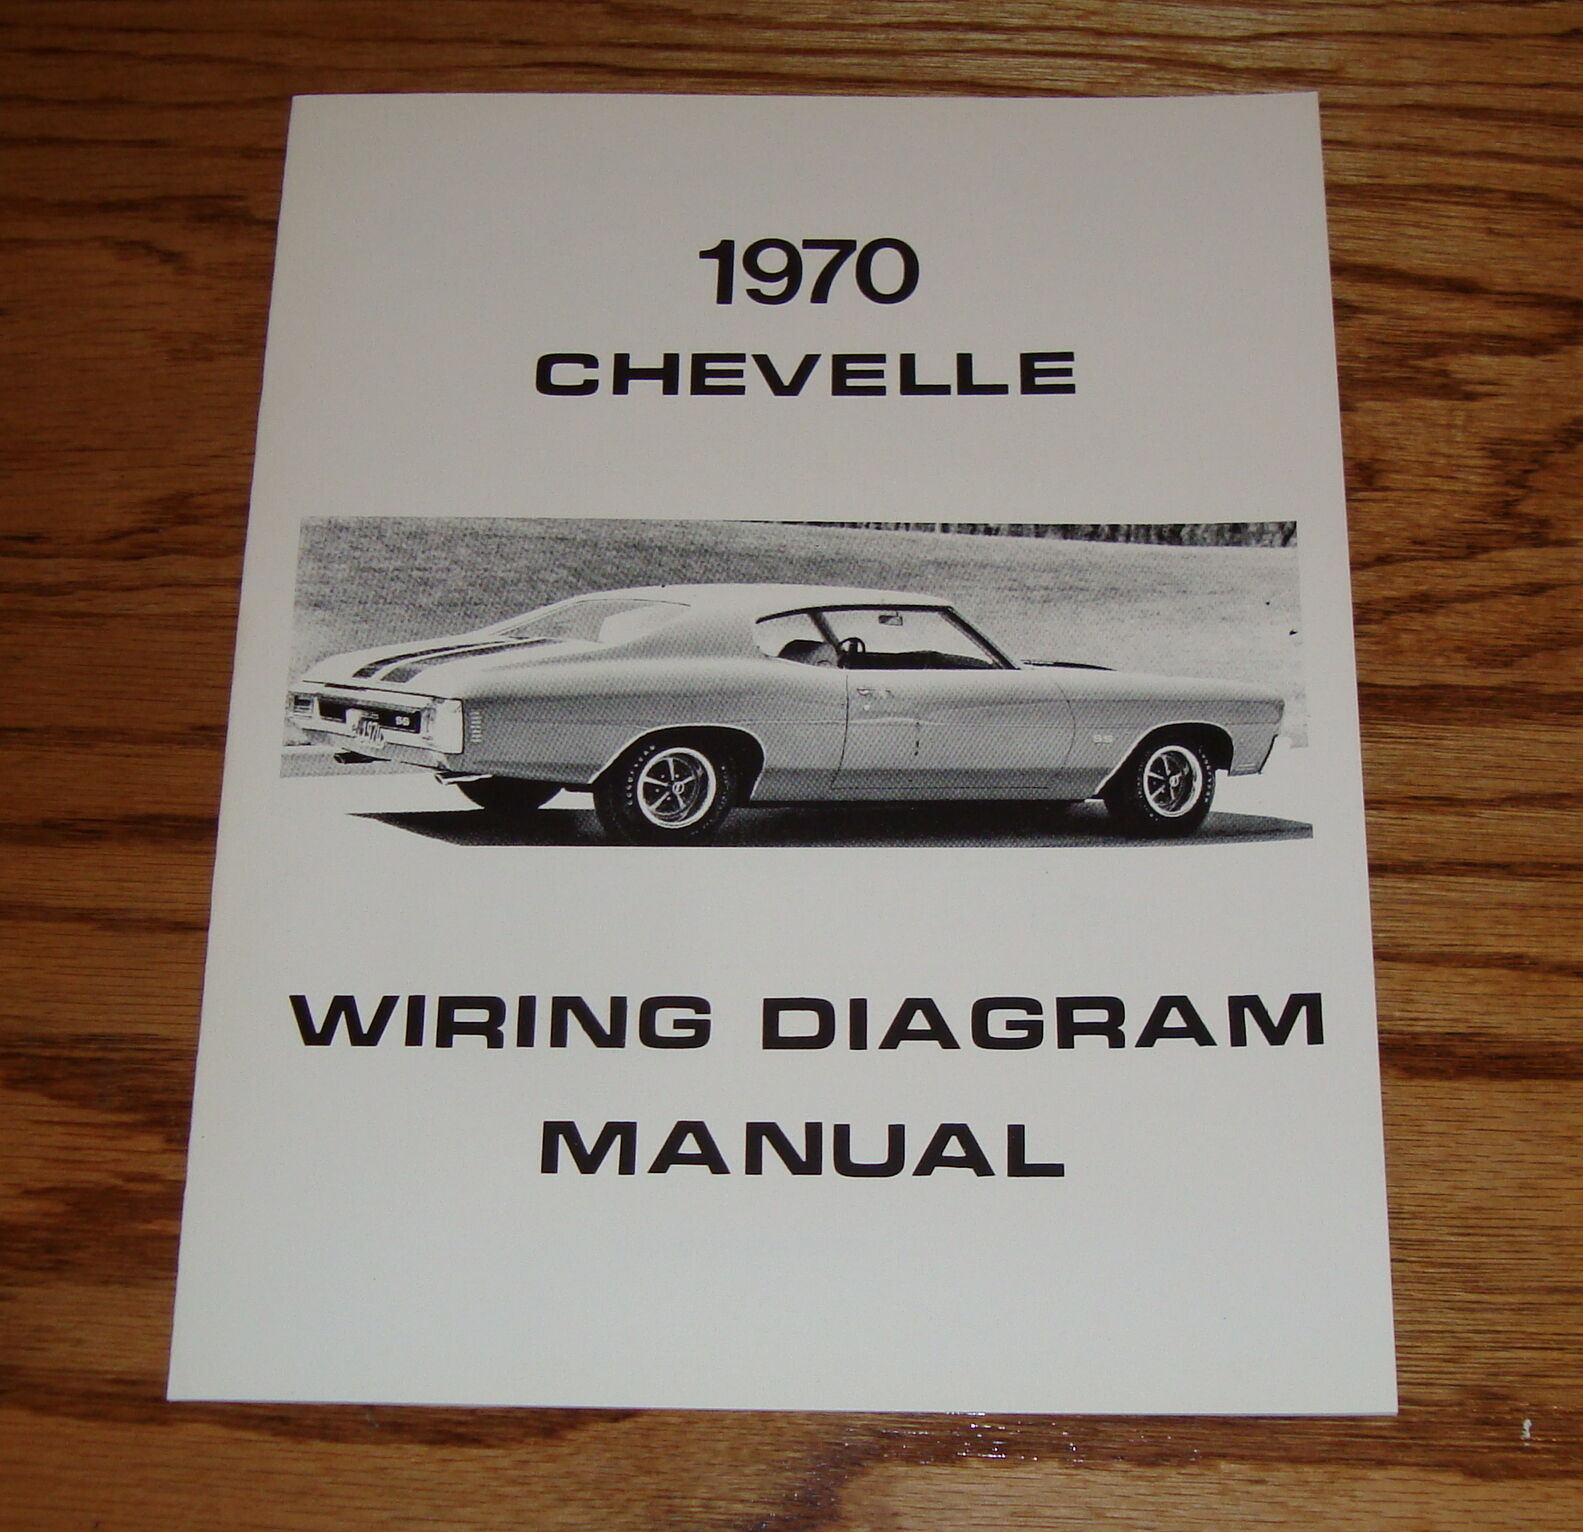 1970 Chevrolet Chevelle Wiring Diagram Manual 70 Chevy Malibu Ss 1 Of See More